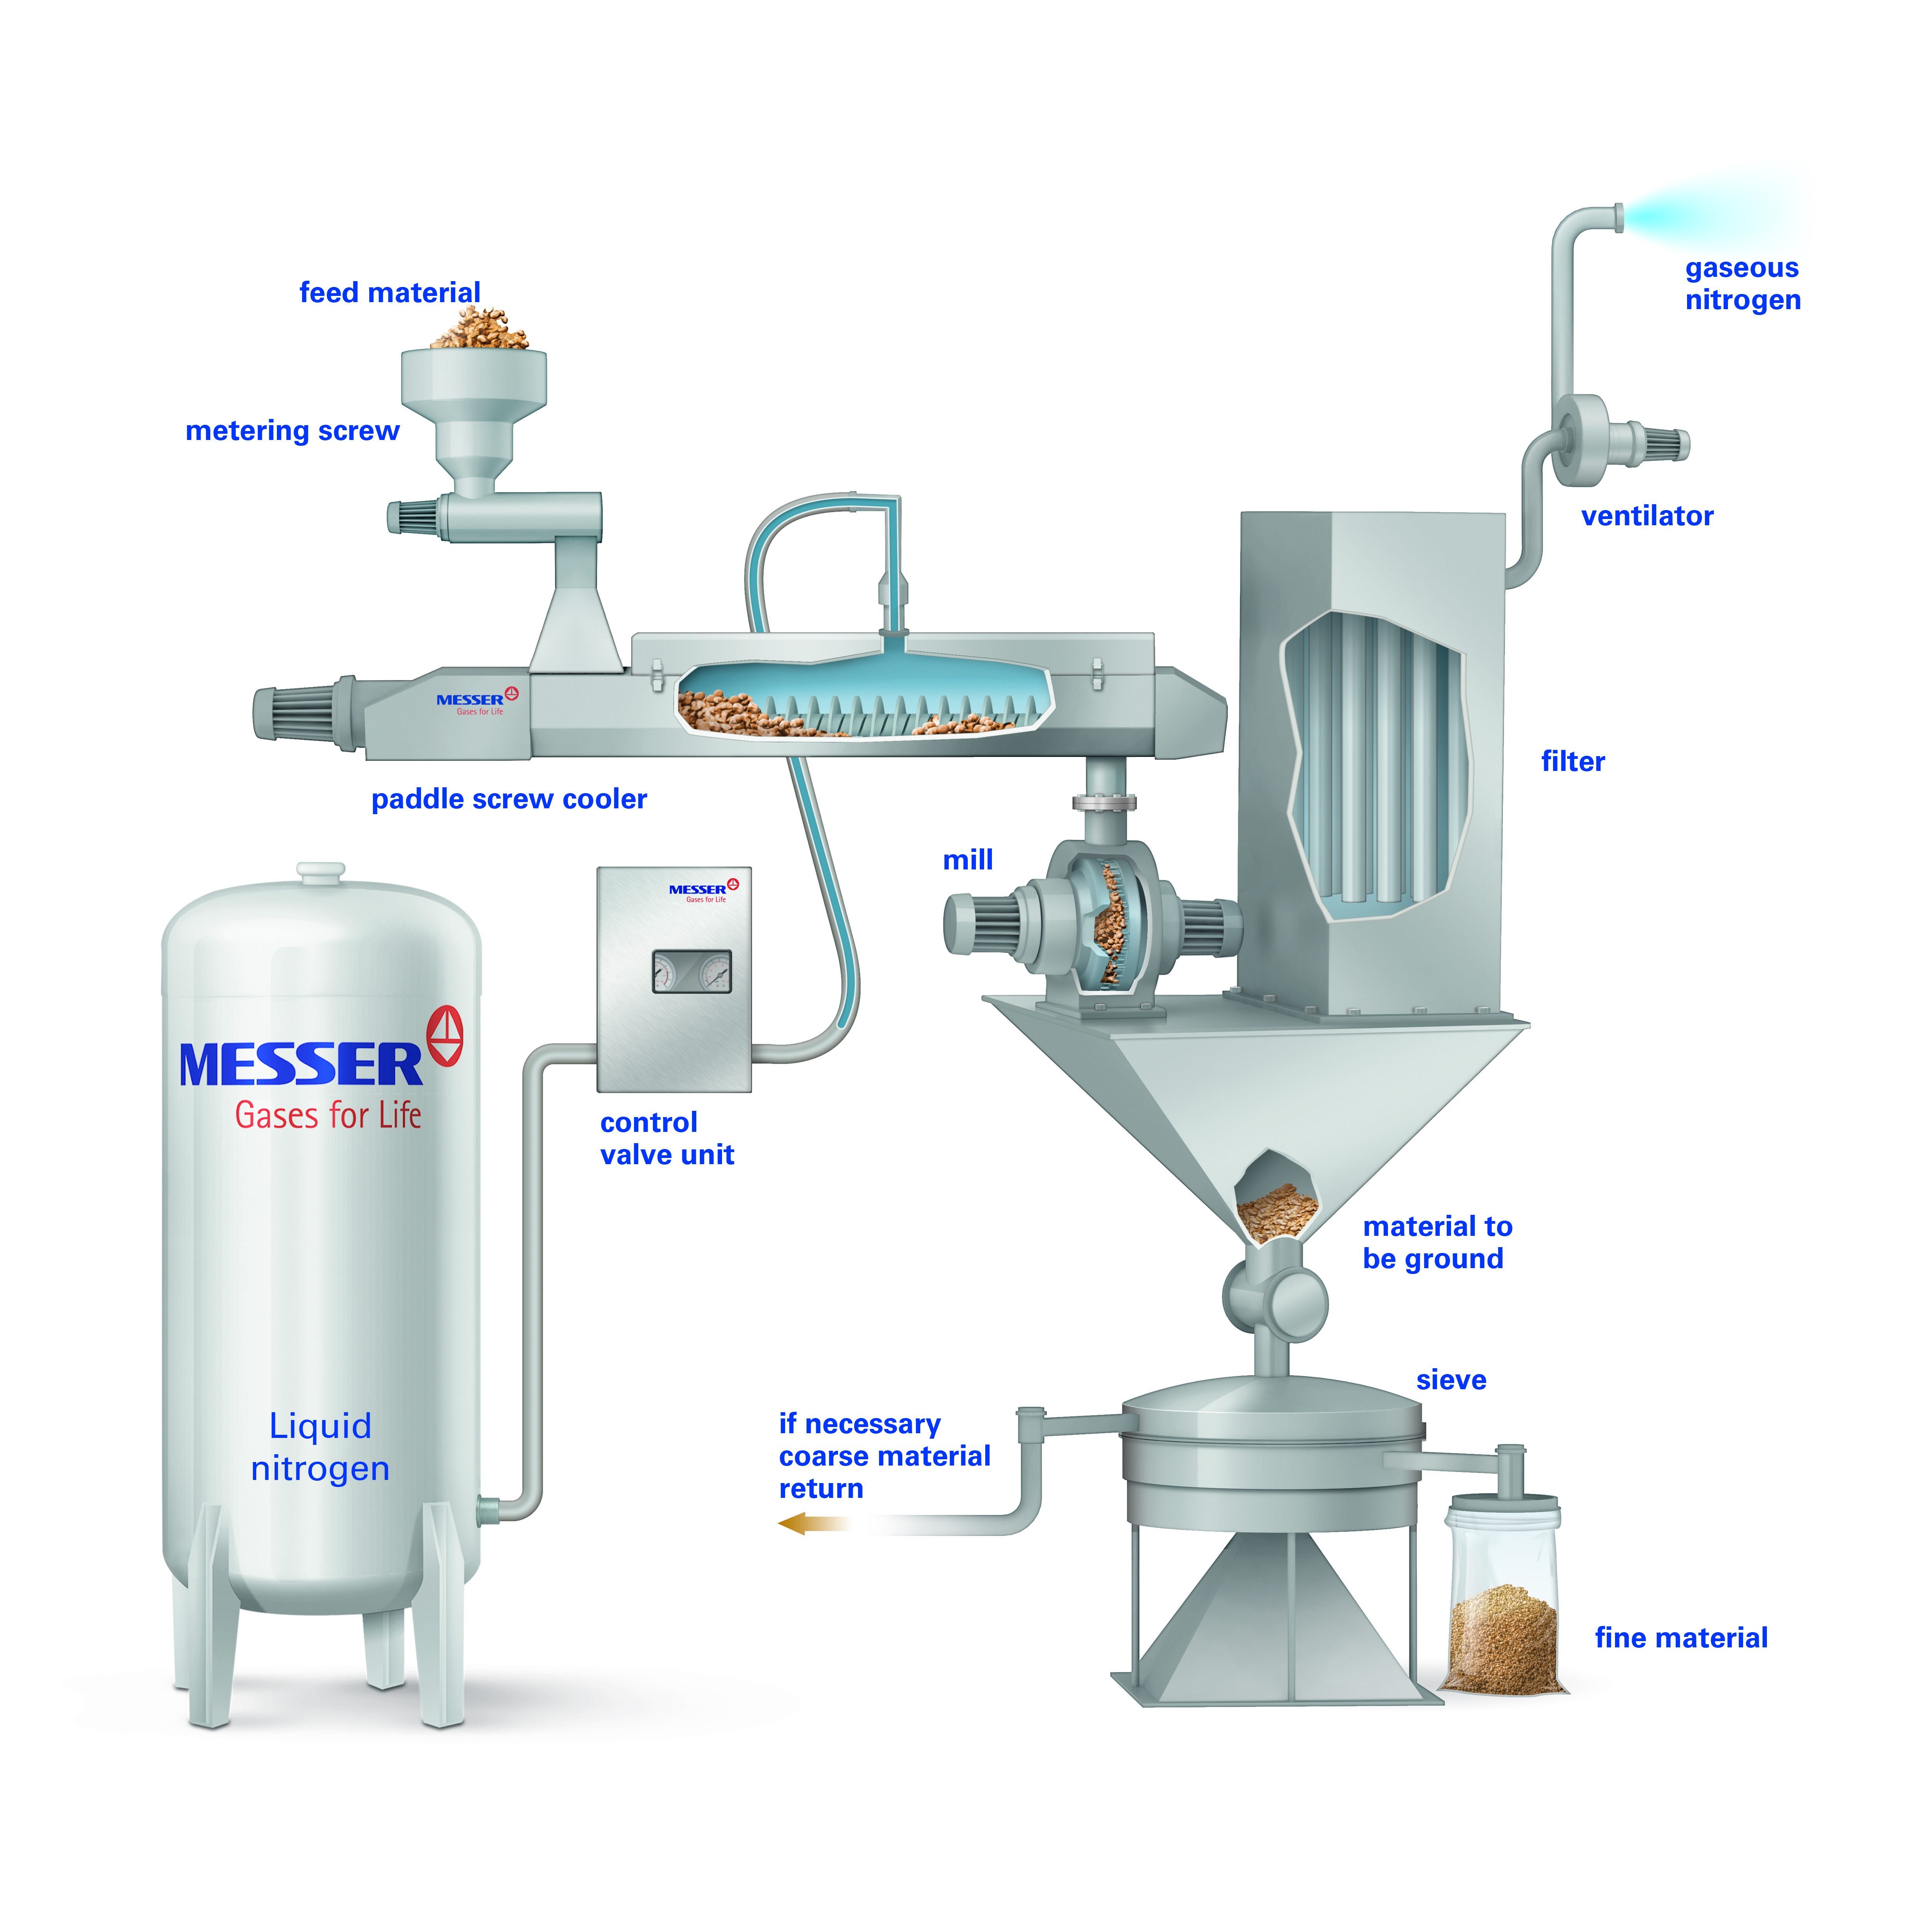 Cryogen technology for product cooling